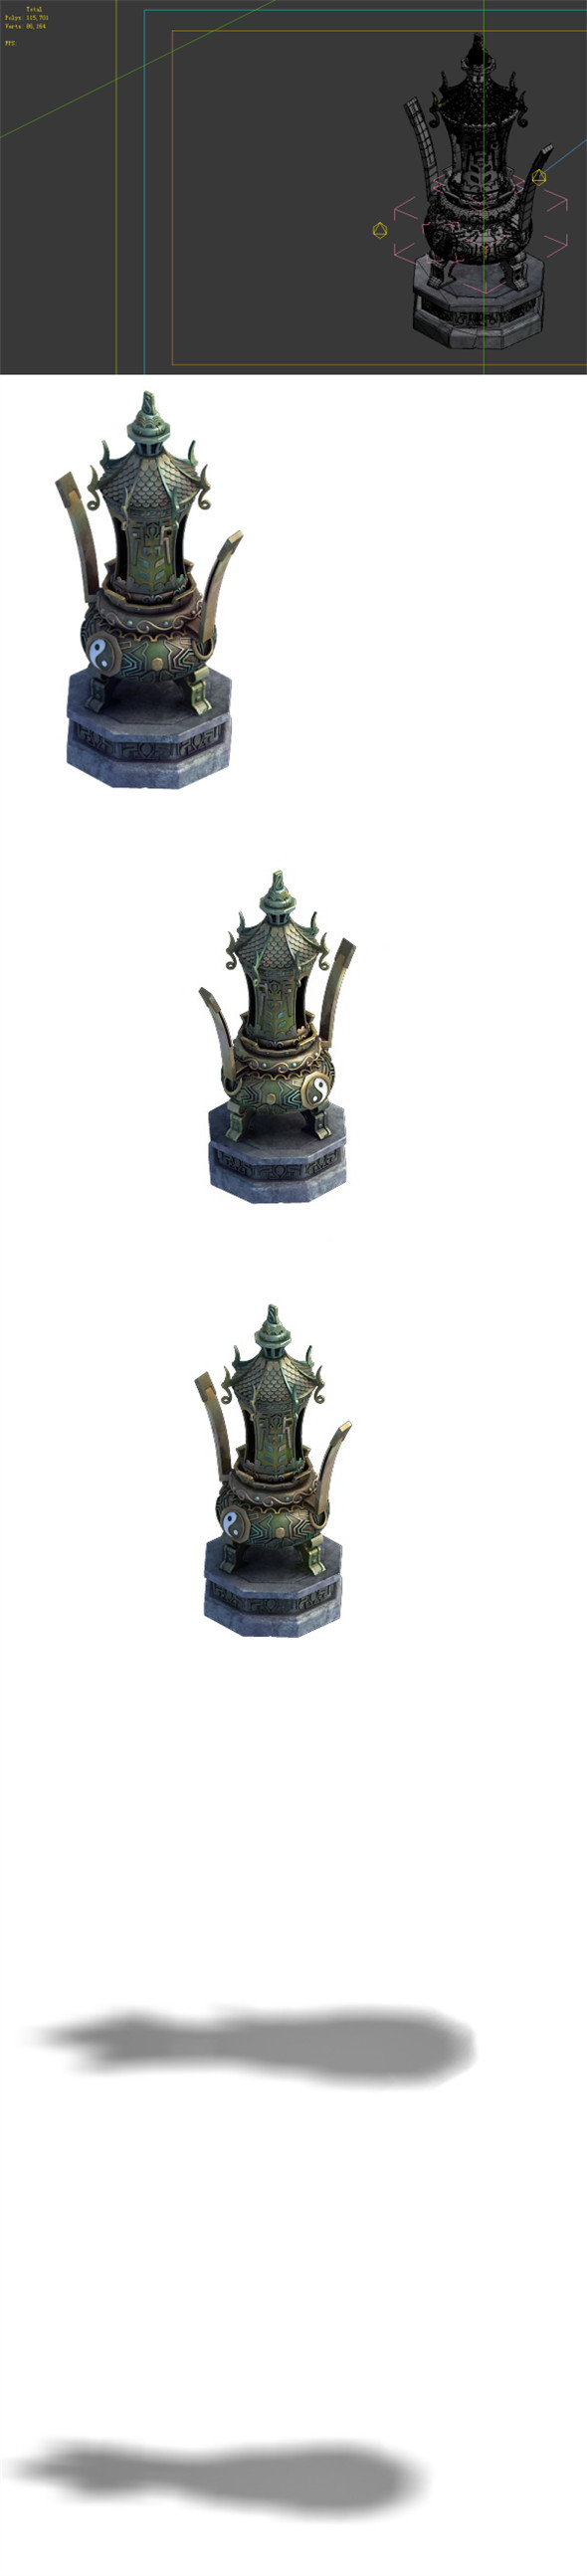 Game Model - Taoist comprehension scene - incense burner stove large decorative stove 01 - 3DOcean Item for Sale